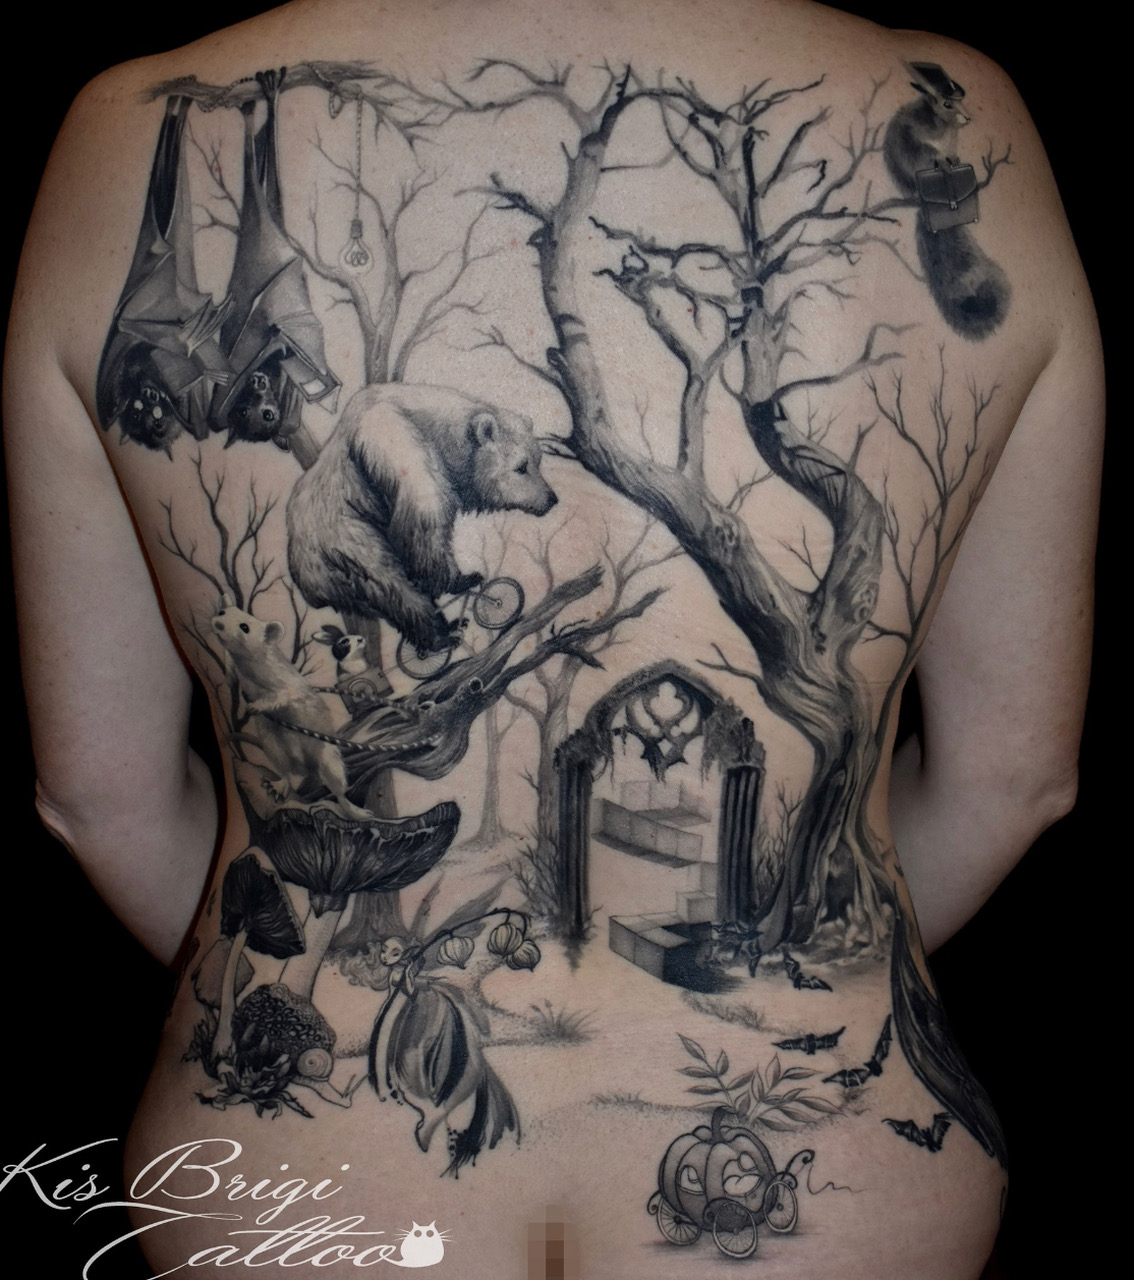 Wald Tiere Familie back piece by Brigi